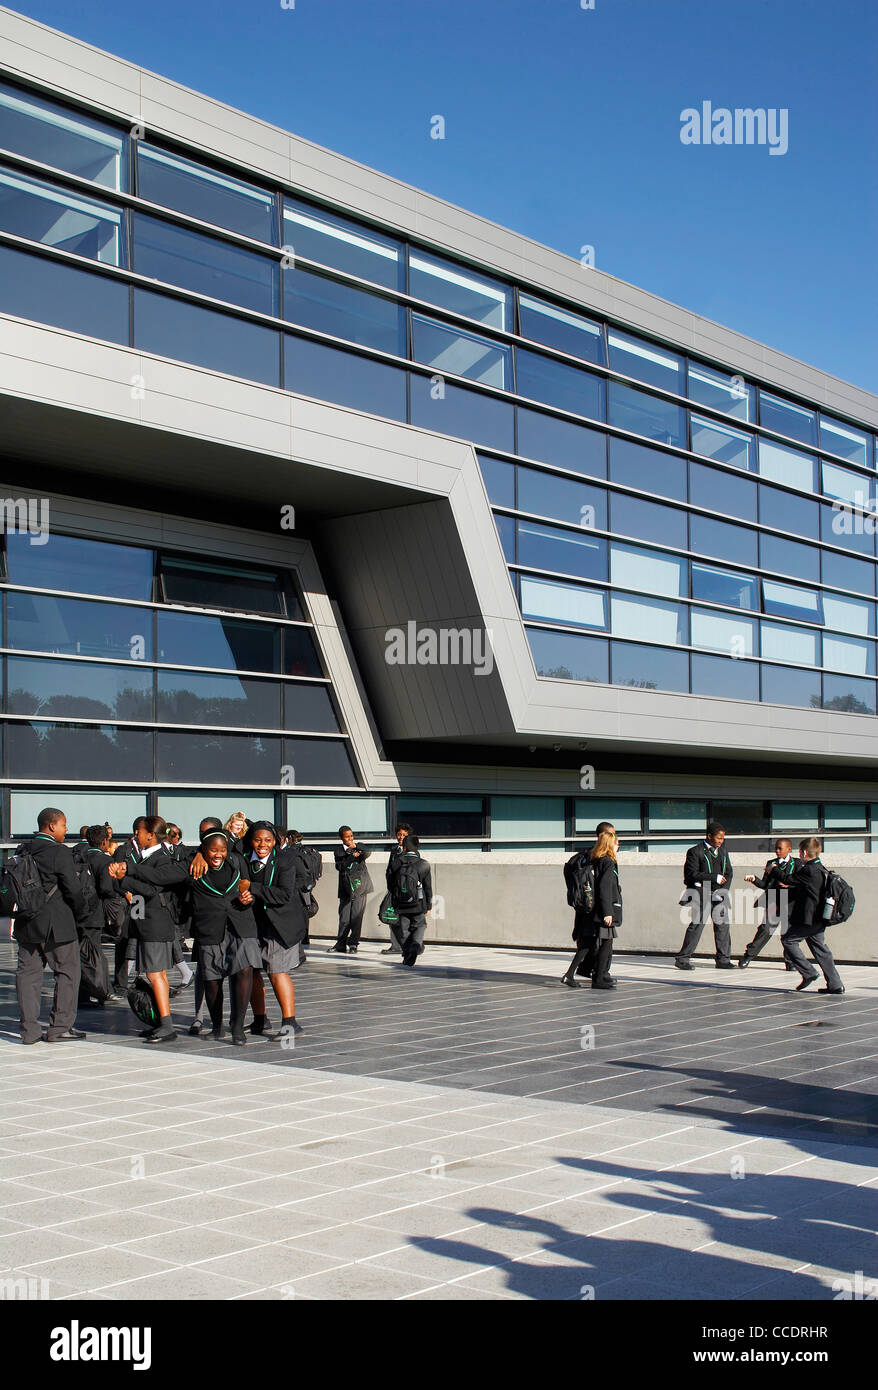 EVELYN GRACE ACADEMY, ZAHA HADID ARCHITECTS, LONDON, 2010, EXTERIOR OF SCHOOL WITH PUPILS Stock Photo